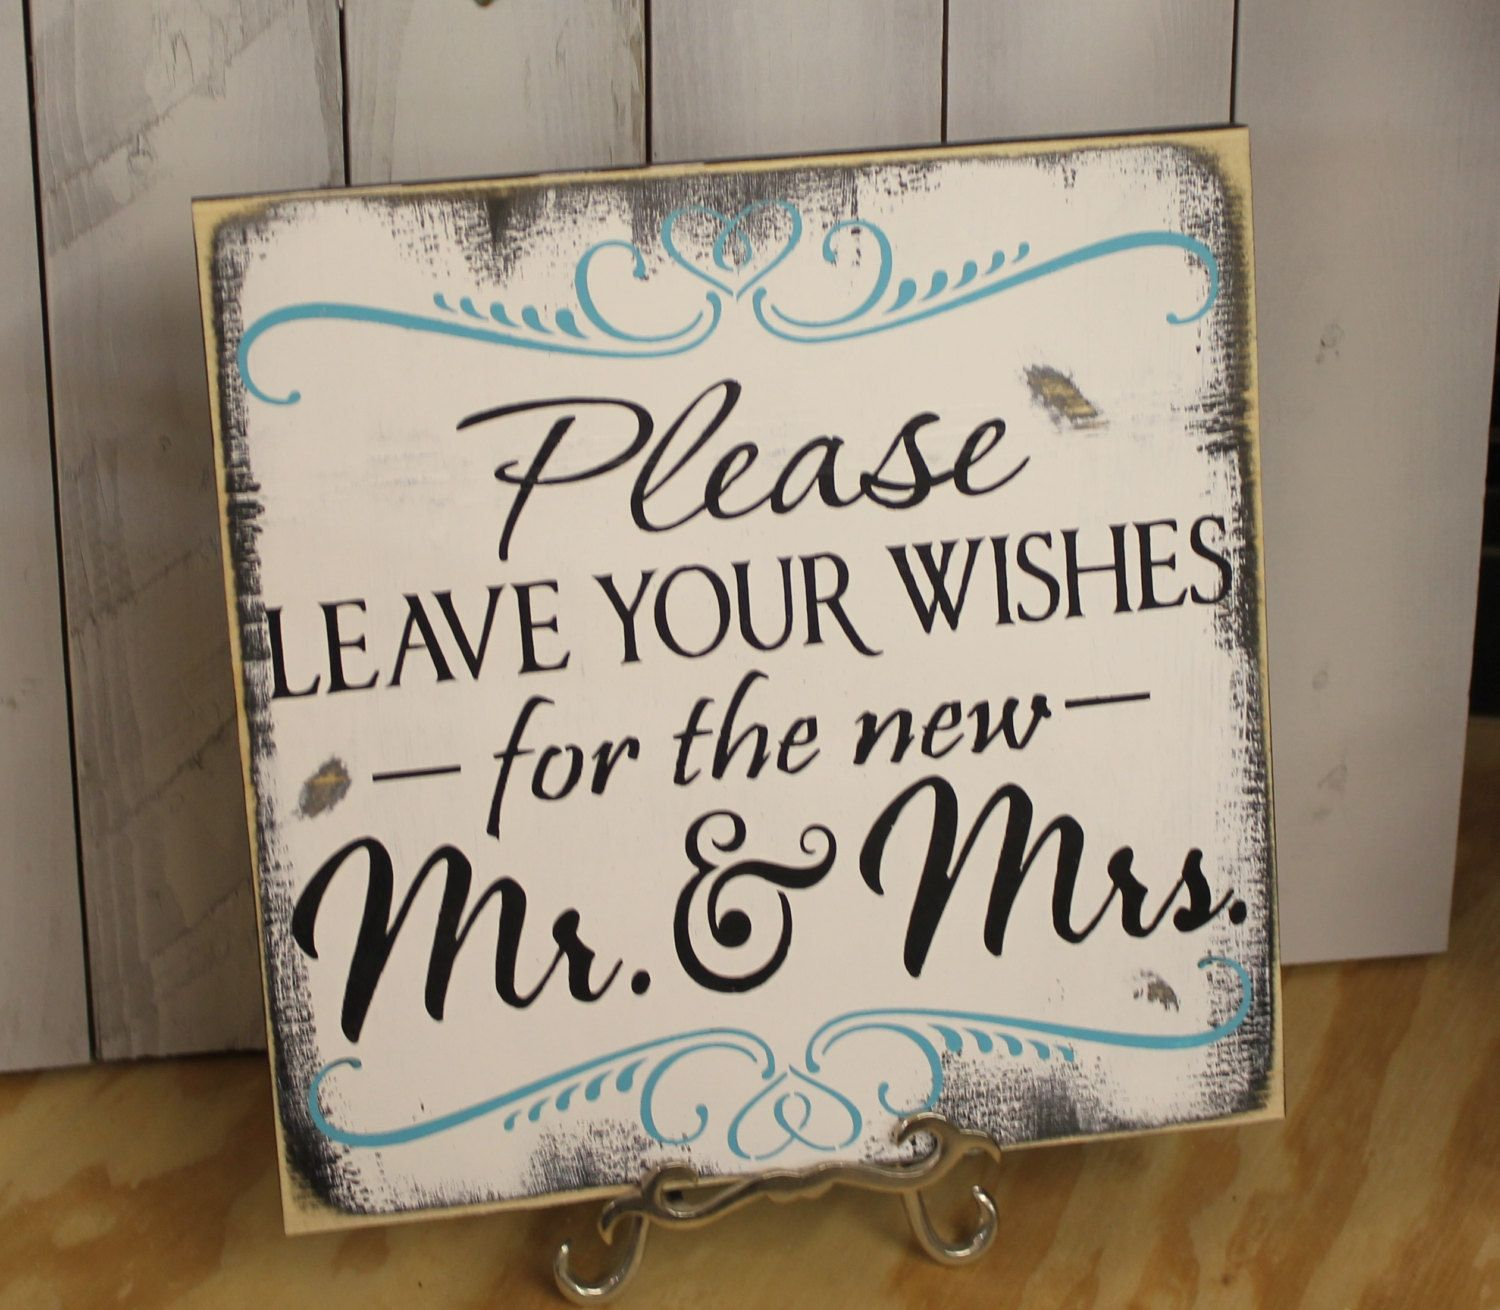 Great Wedding Gift Messages : wedding wishes wedding signs wedding stuff dream wedding wedding ideas ...